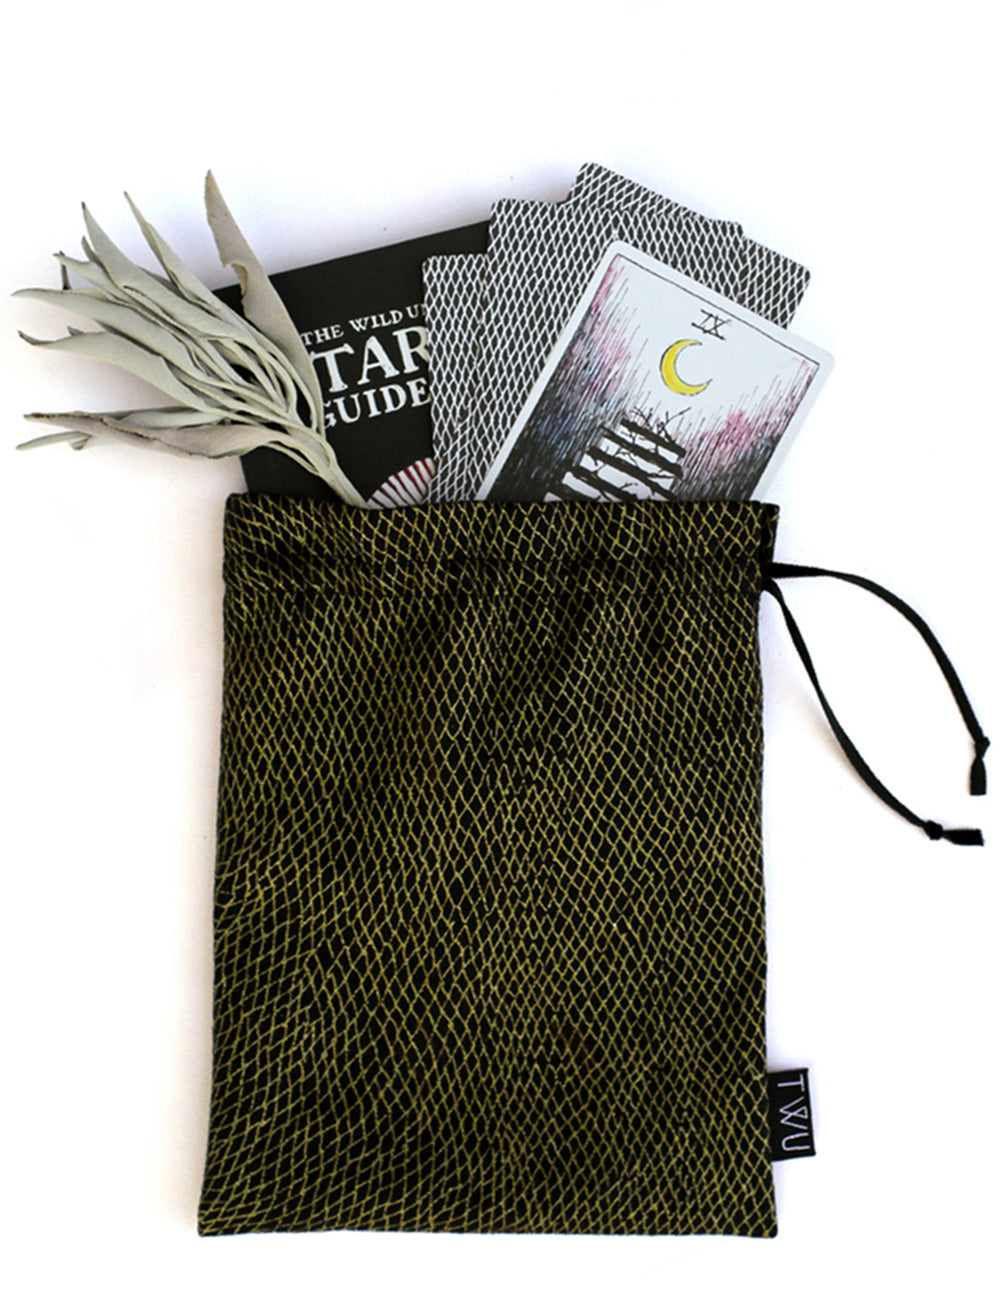 Tarot Ritual Bag